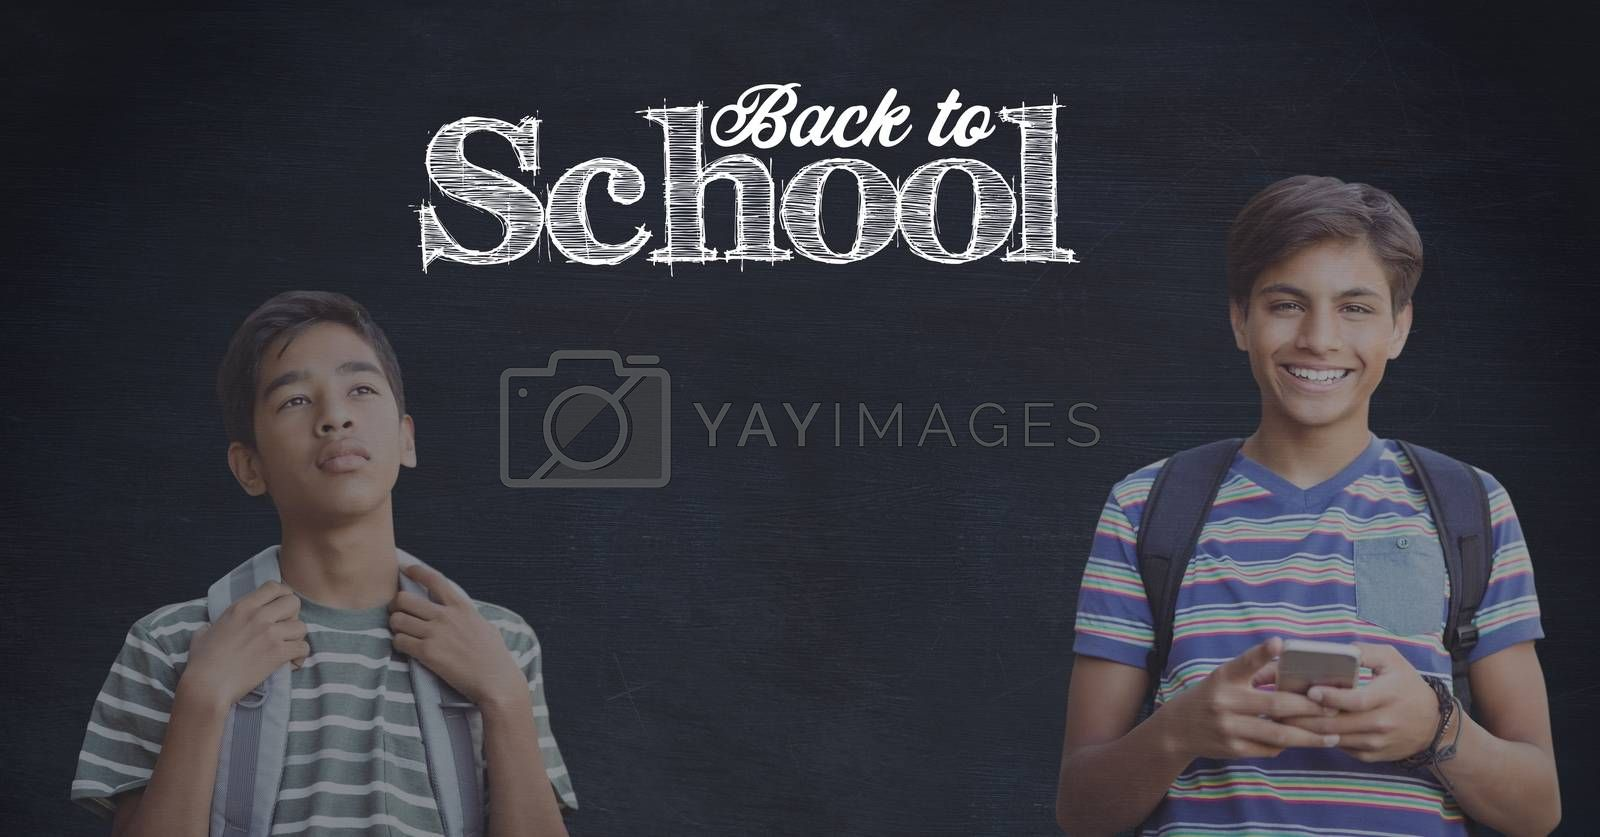 Digital composite of Students and Back to school text on blackboard